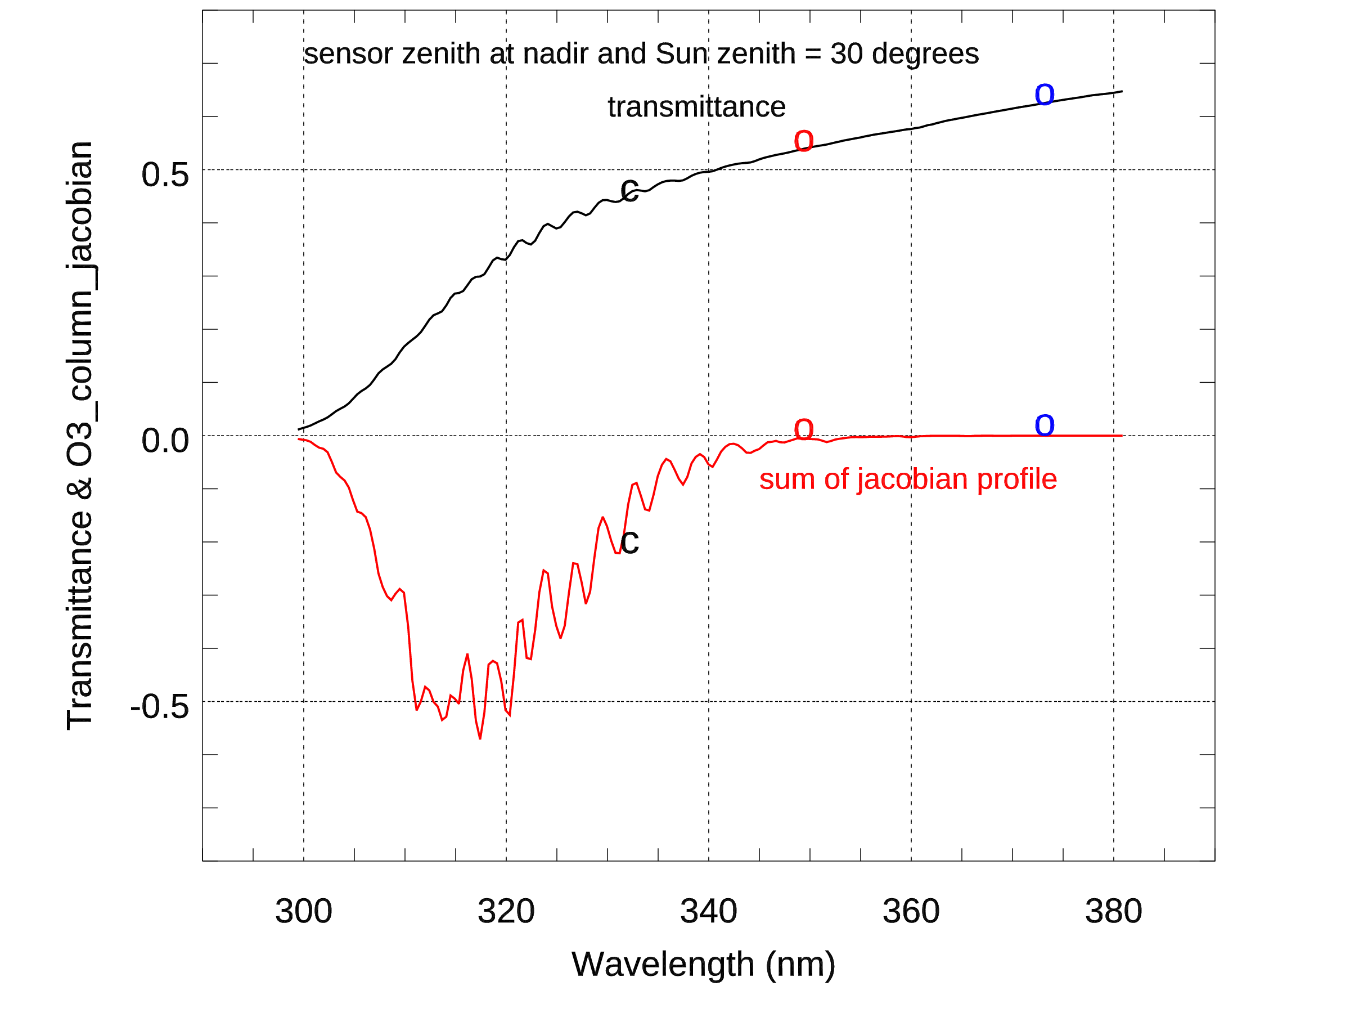 """Figure: Total transmittance from surface to satellite (black line). The red line is the accumulated CRTM radiance Jacobian to ozone profile. Symbol """"c"""" is the position at 331 nm used to estimate surface reflectance. The symbol """"o"""" are the two channels, that we propose, to estimate the surface reflectance. The surface reflectance for other channels is either interpolated or extrapolated from the two reflectance at 347.6 nm and 371.8 nm."""